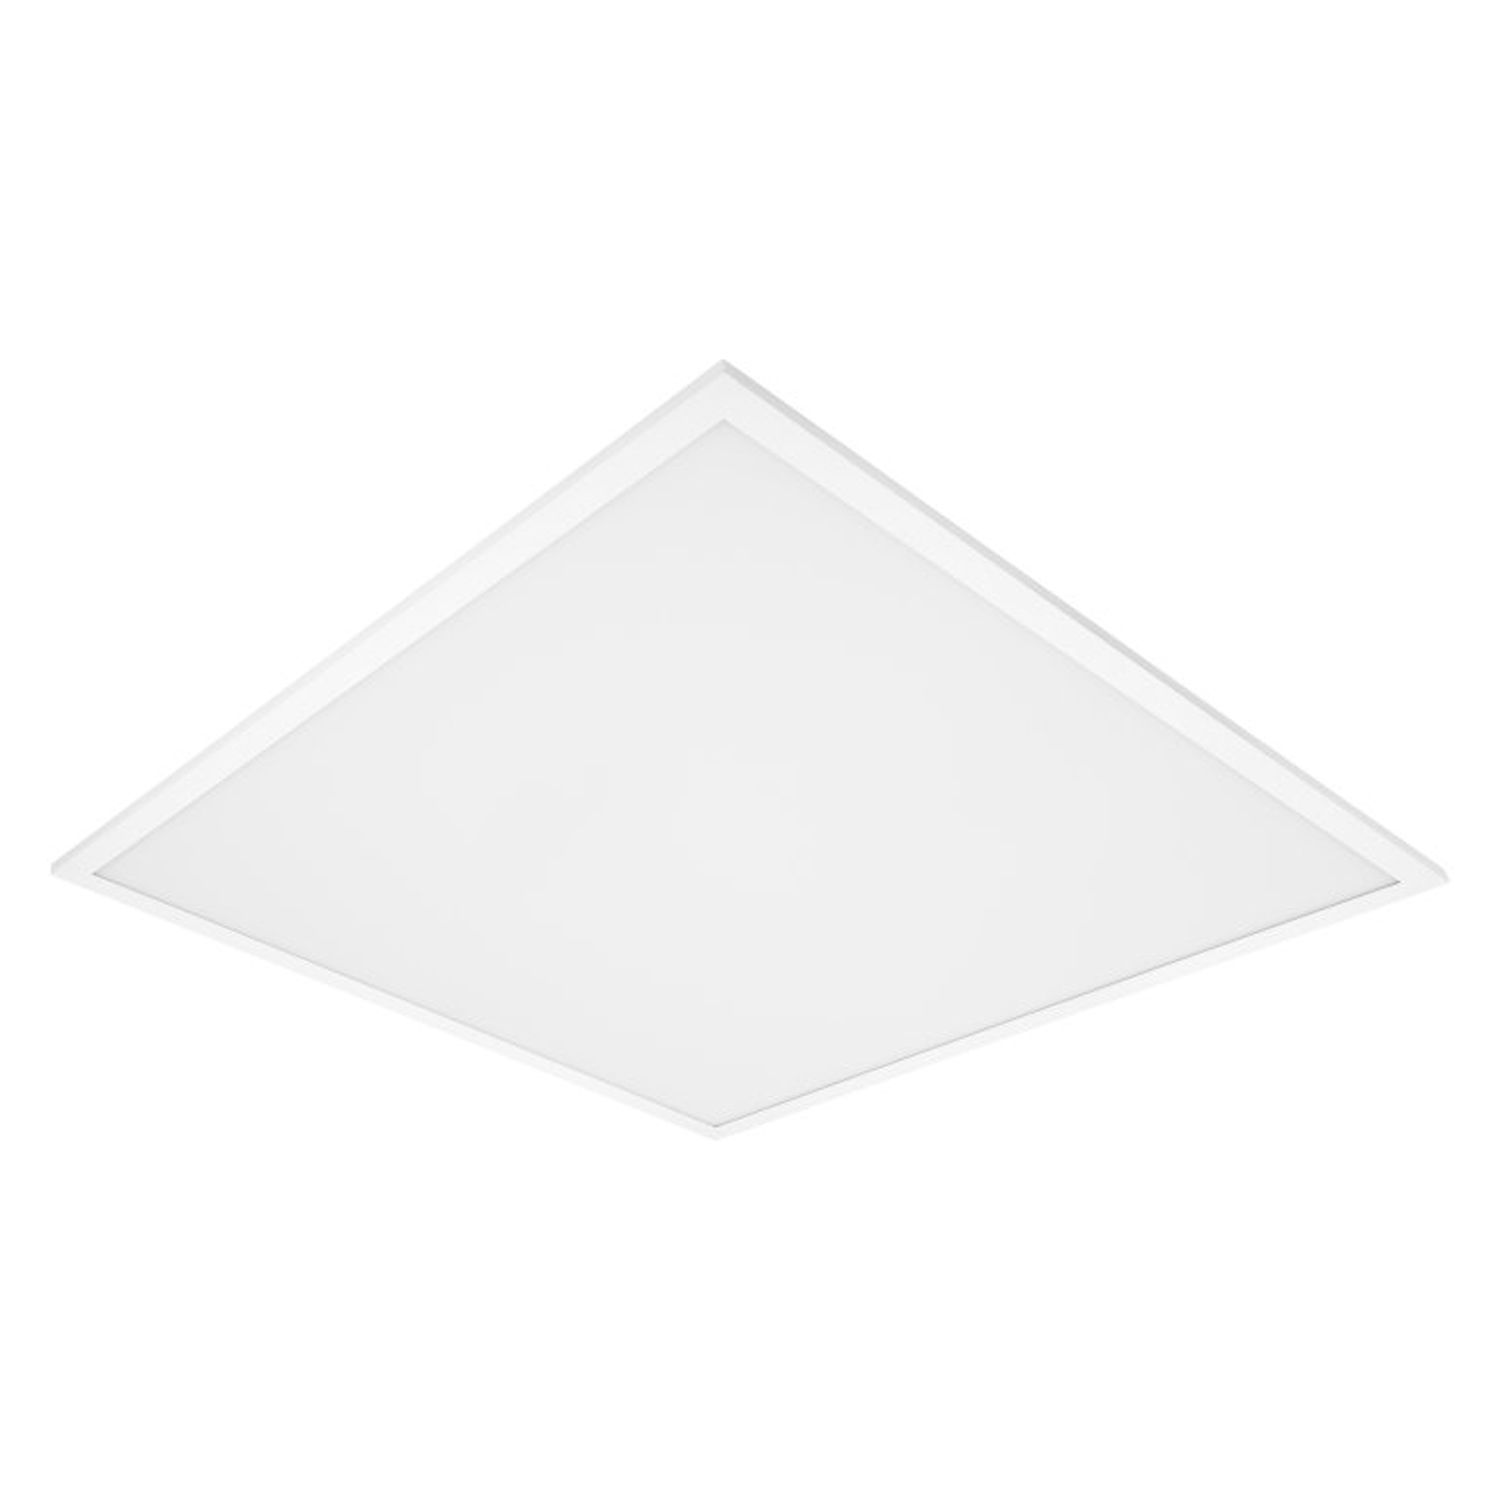 Ledvance Panneau LED Performance 62.5x62.5cm 3000K 30W | Blanc Chaud